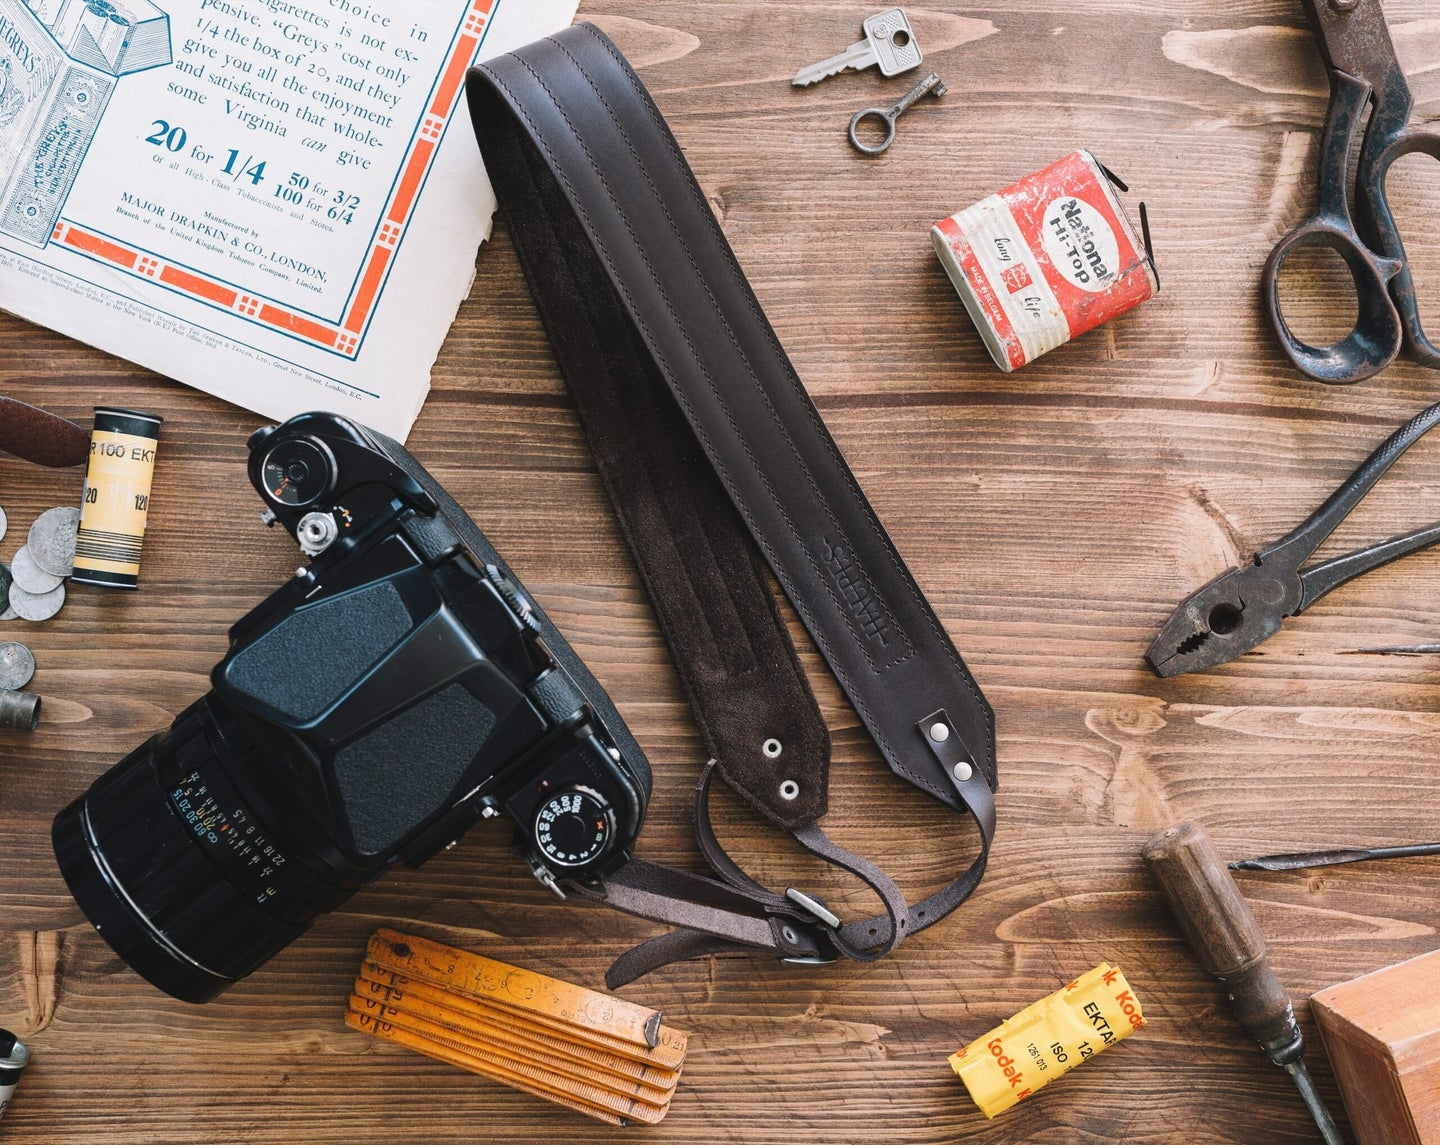 leather camera strap attached to a black camera with the lens, pliers, screwdrivers and meter on a wooden floor